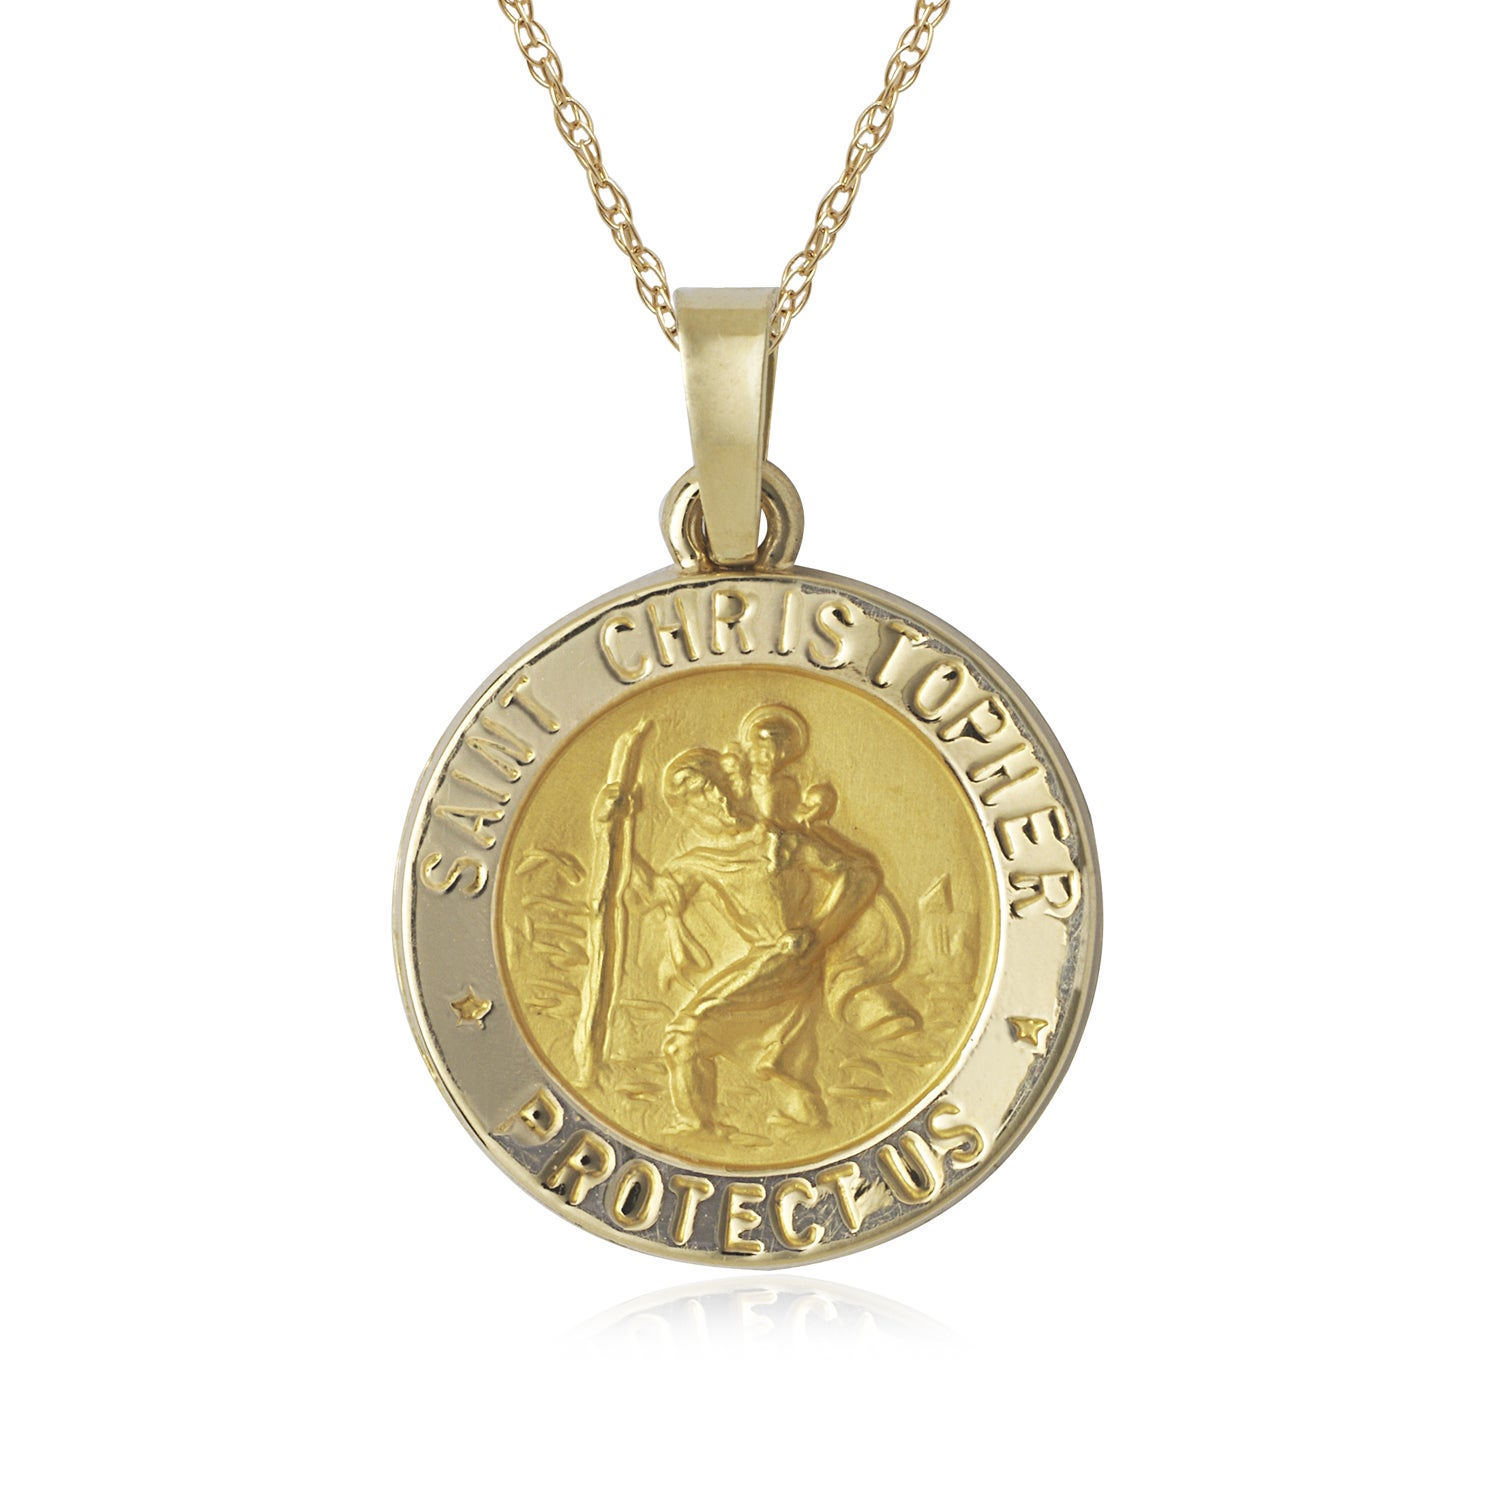 Christopher Charm Pendant with 0.8mm Box Chain Necklace 14K Yellow Gold Religious St